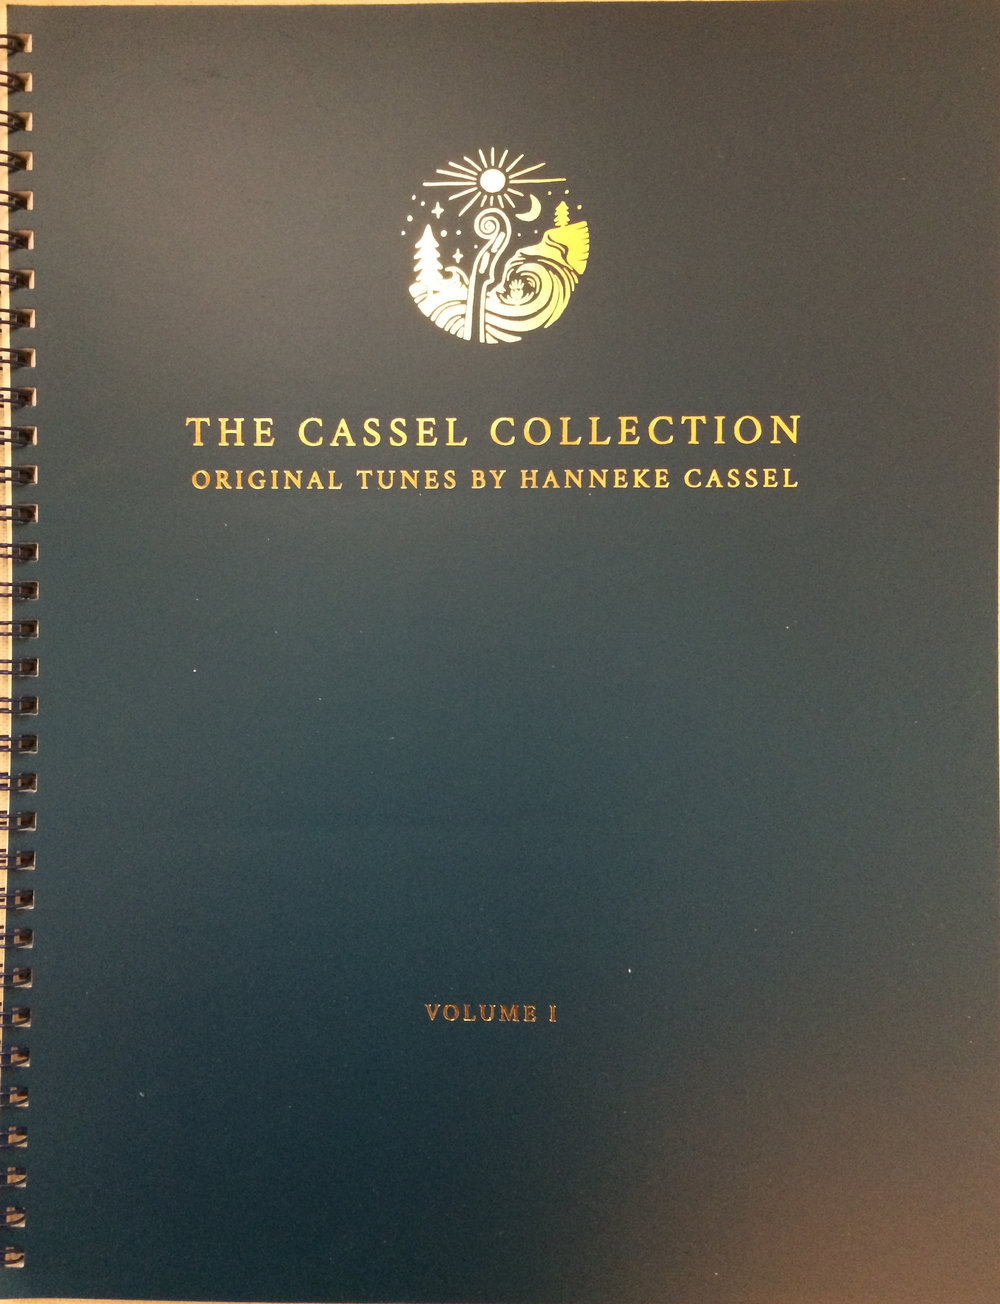 Cassel Collection image.jpg